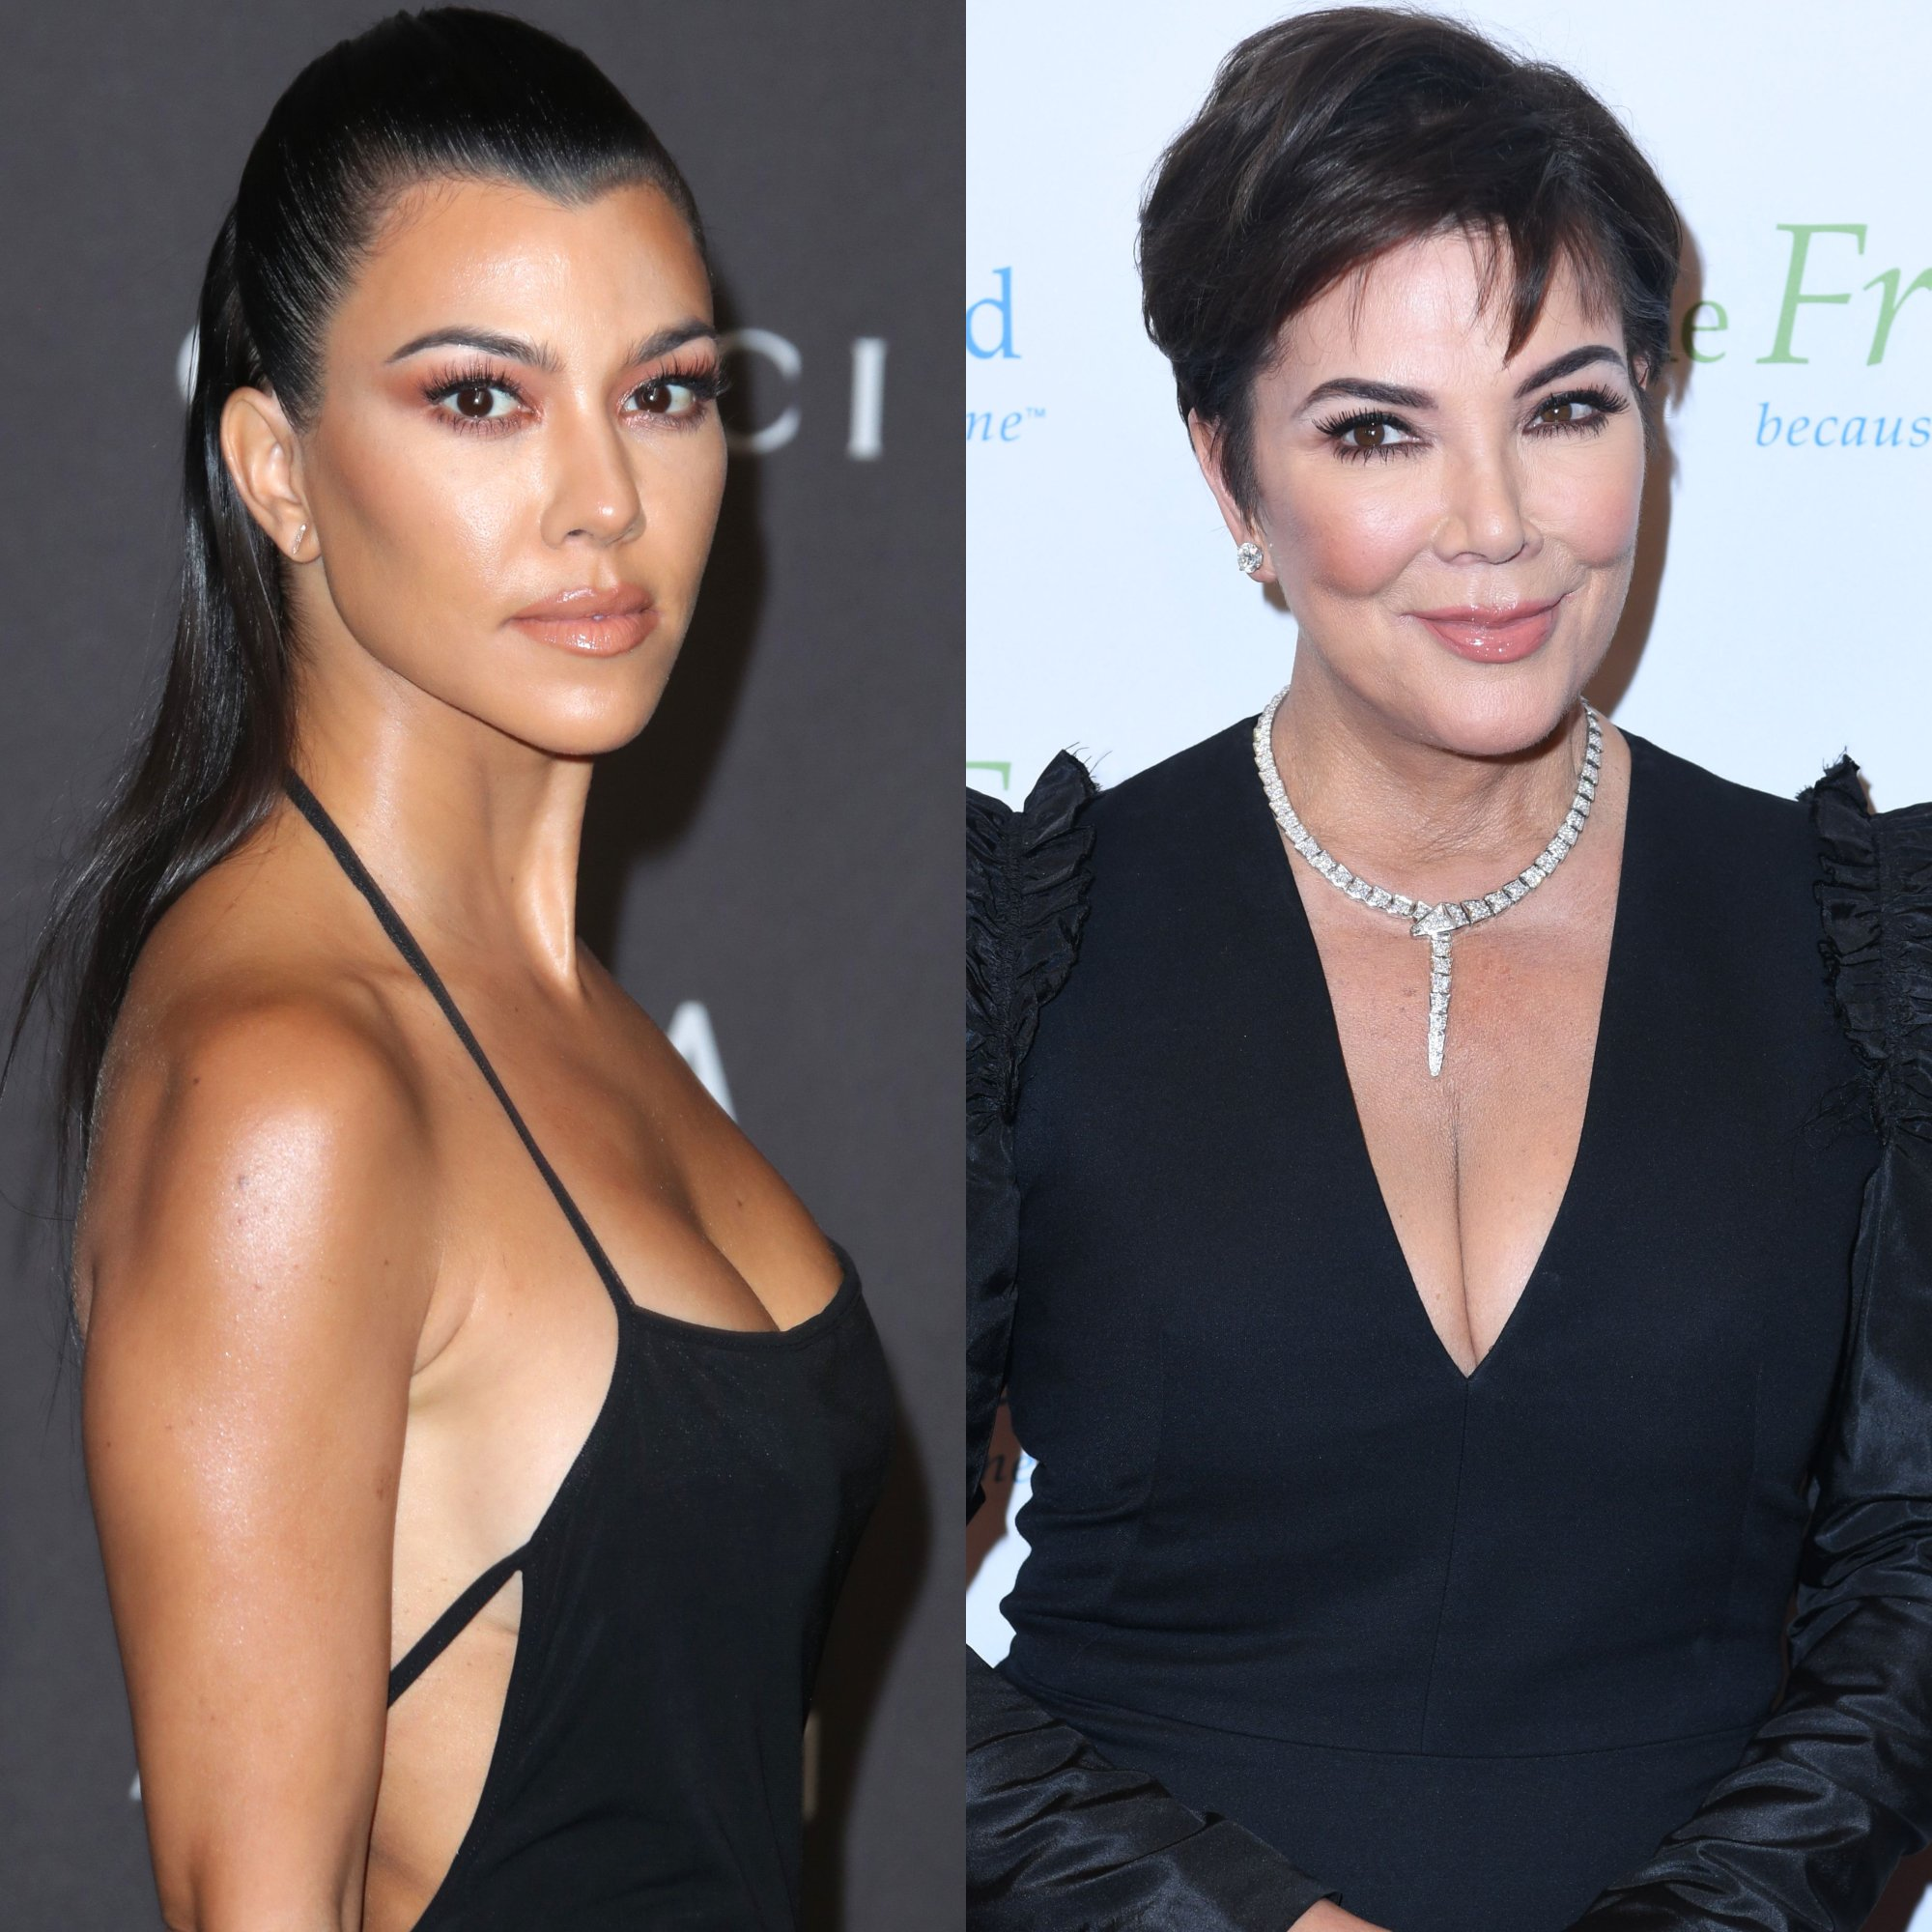 KUWTK: Kris Jenner And Kourtney Kardashian Sued For Harassment By Their Former Security Guard – Attorney Claps Back!